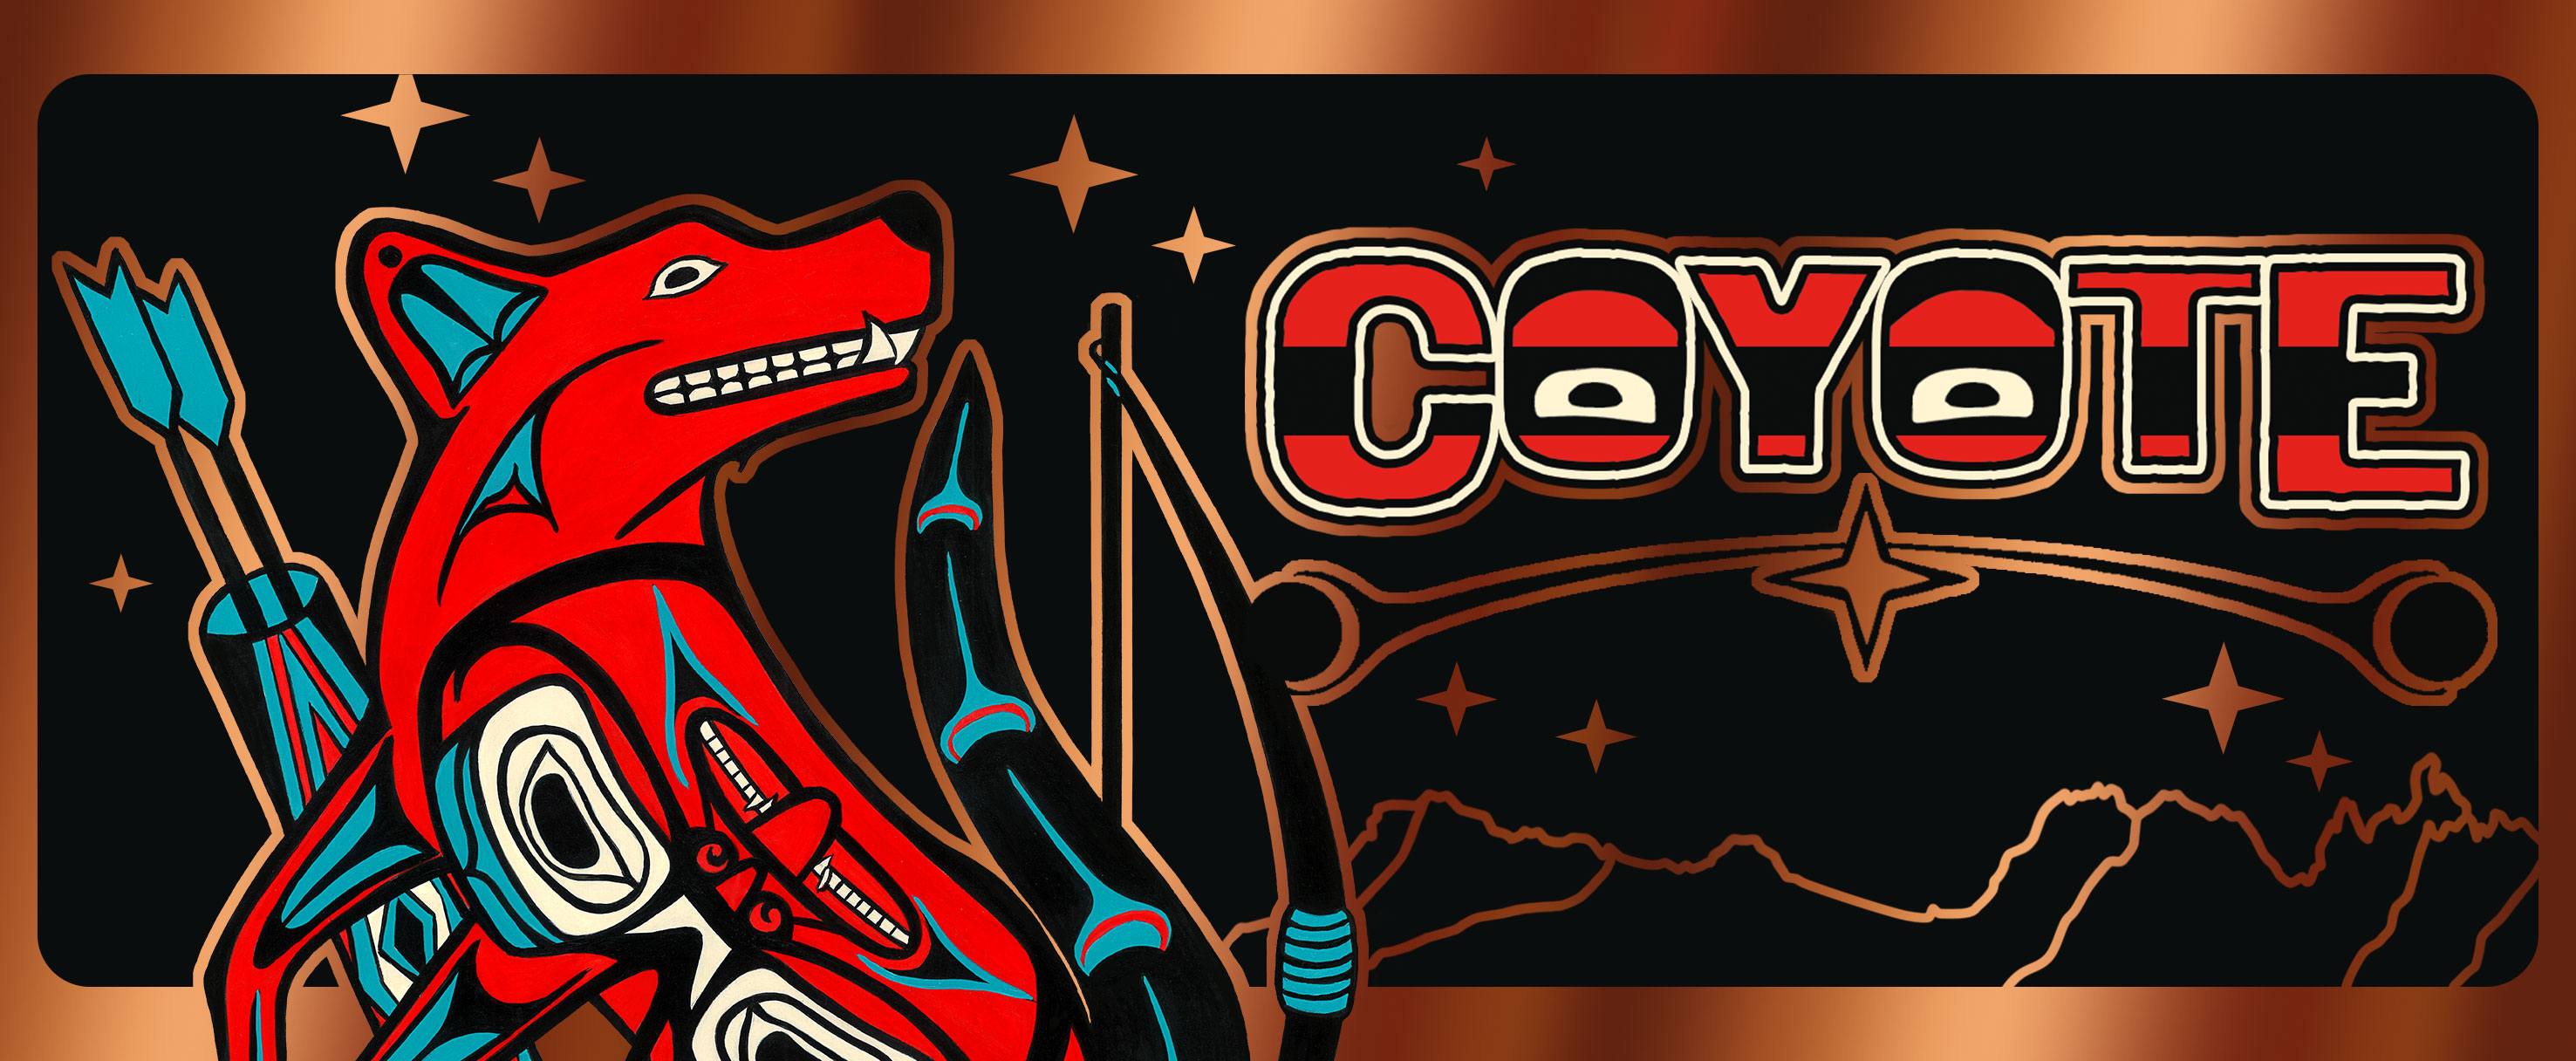 Banner Coyote